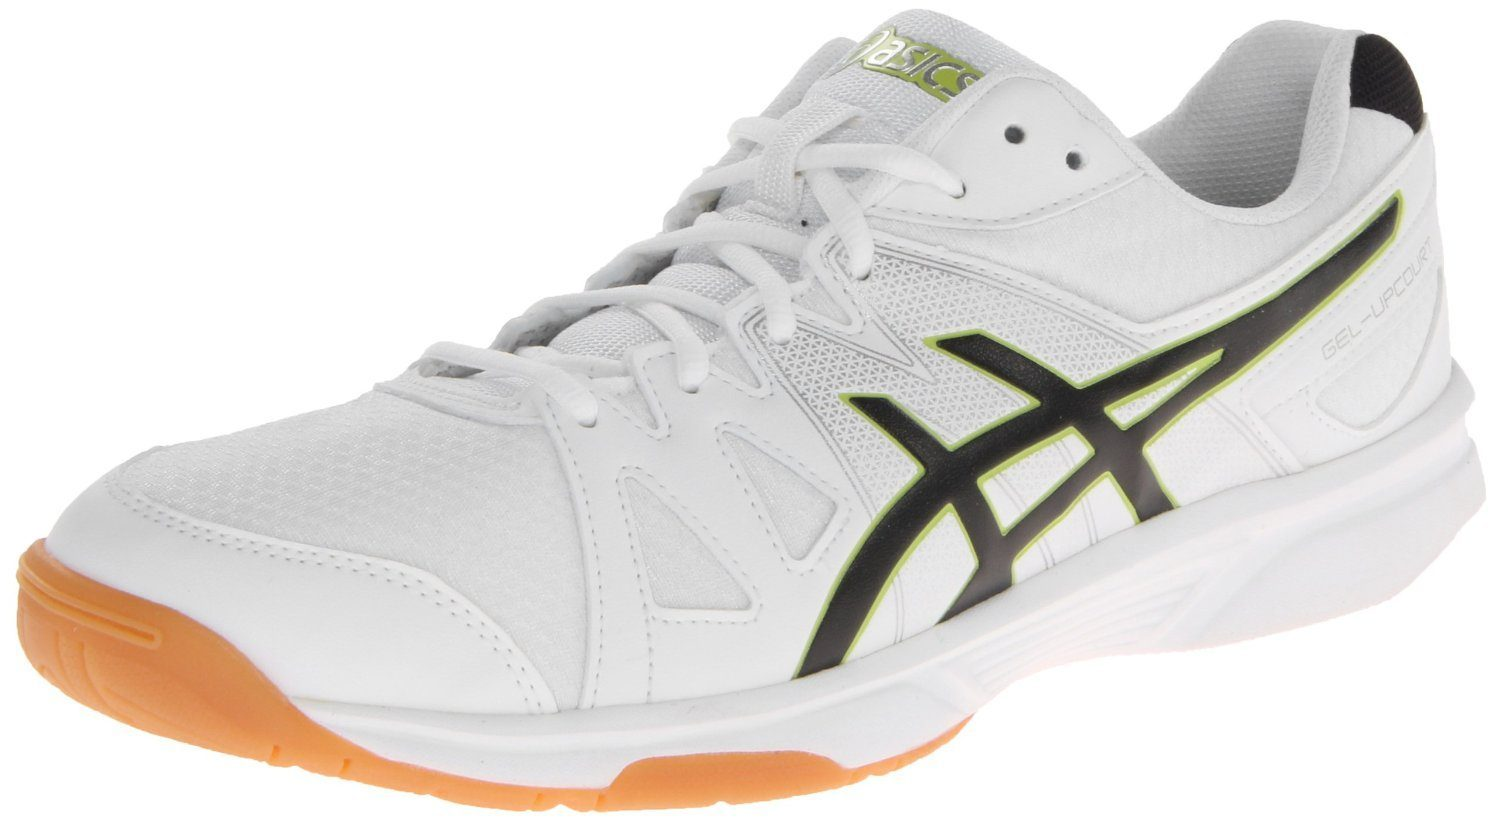 Asics Gel Upcourt Squash Shoes Men White